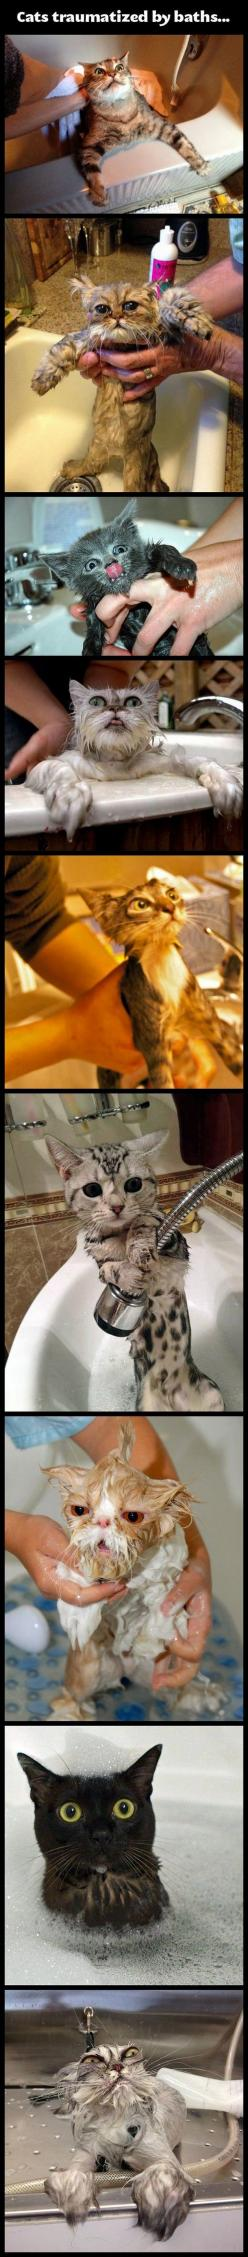 A collection of Totally Random funny stuff that you'll like (16 Pics): Kitty Cat, Cat Bath, Animals Meme, Funny Cats, Cats Traumatized, Cat Fail, Funny Animal Meme